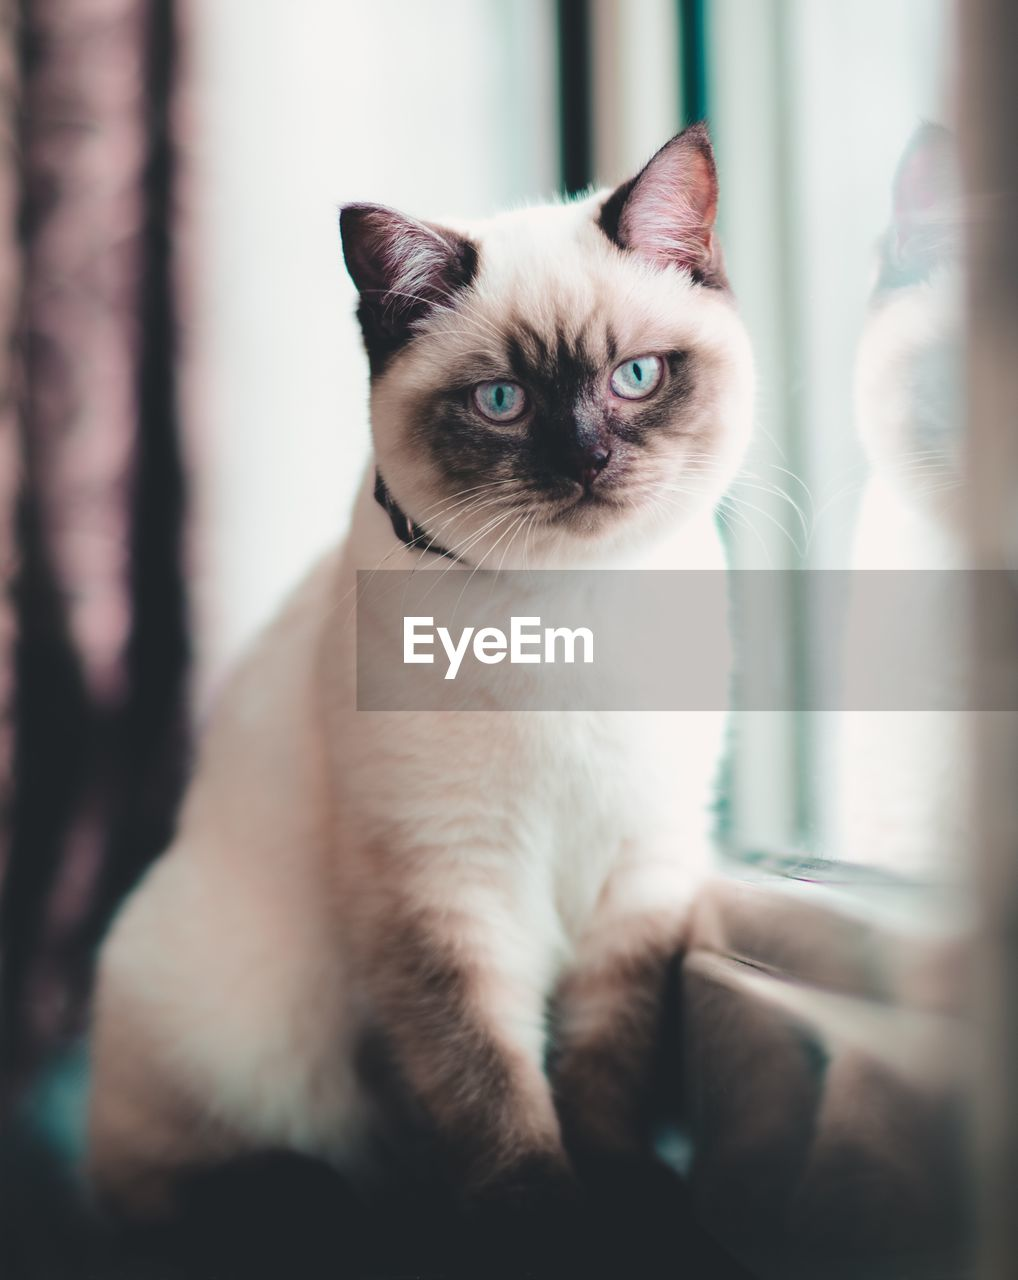 pets, domestic, cat, domestic animals, domestic cat, mammal, feline, one animal, vertebrate, indoors, portrait, no people, selective focus, looking at camera, close-up, whisker, sitting, animal eye